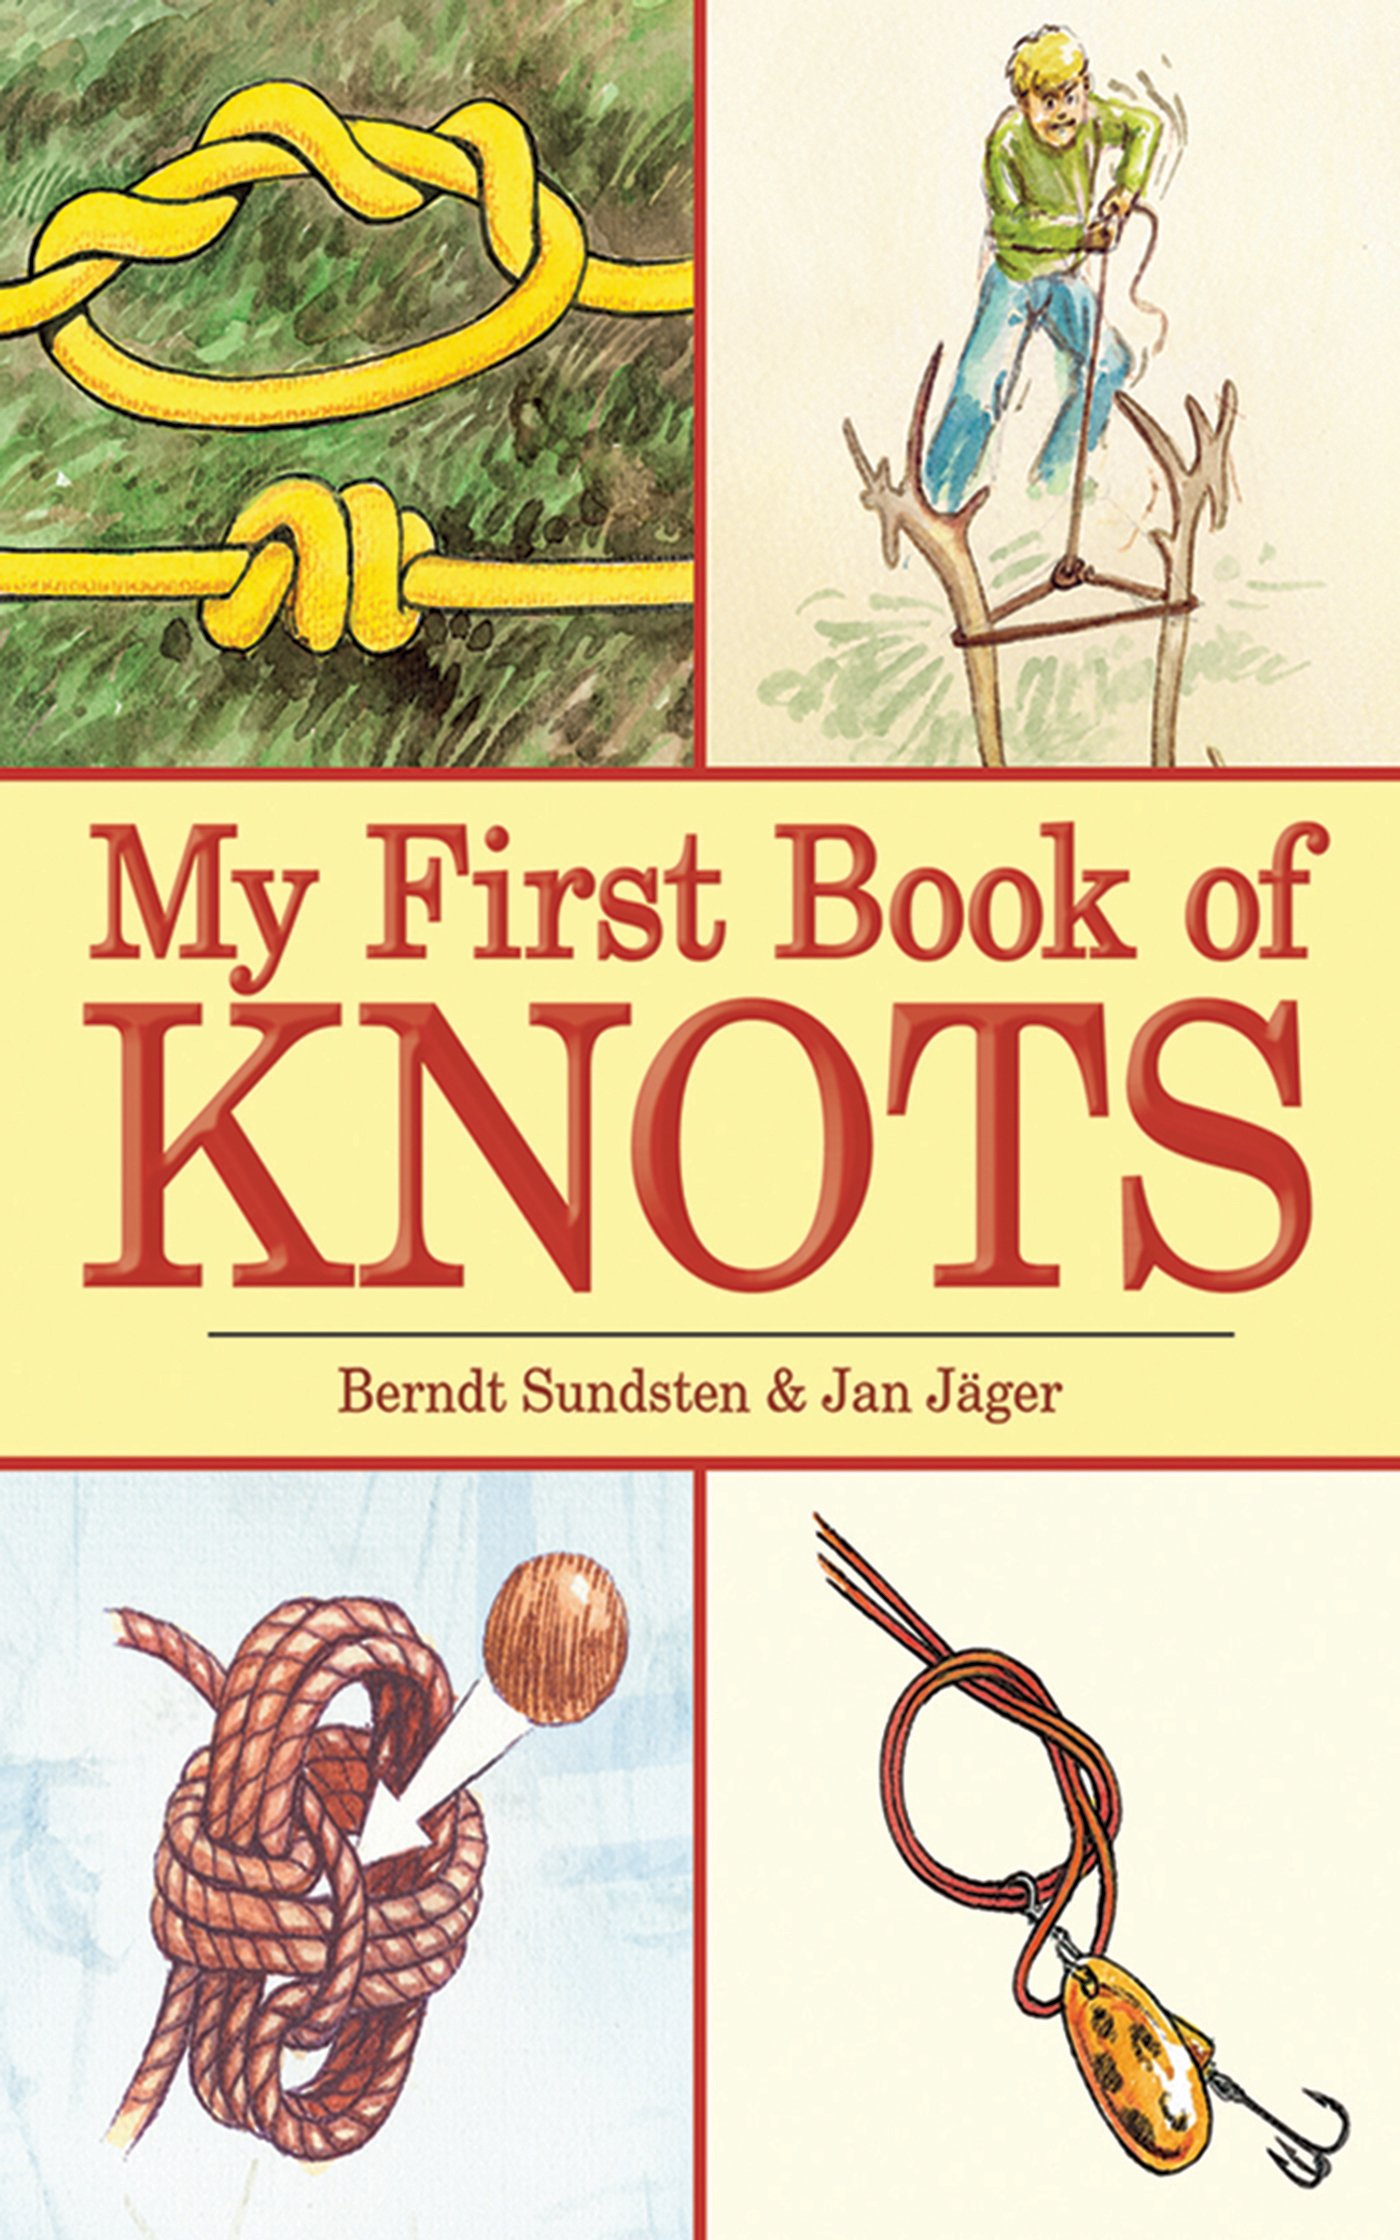 My First Book of Knots (My First Book Of... (Skyhorse)) by SKYHORSE